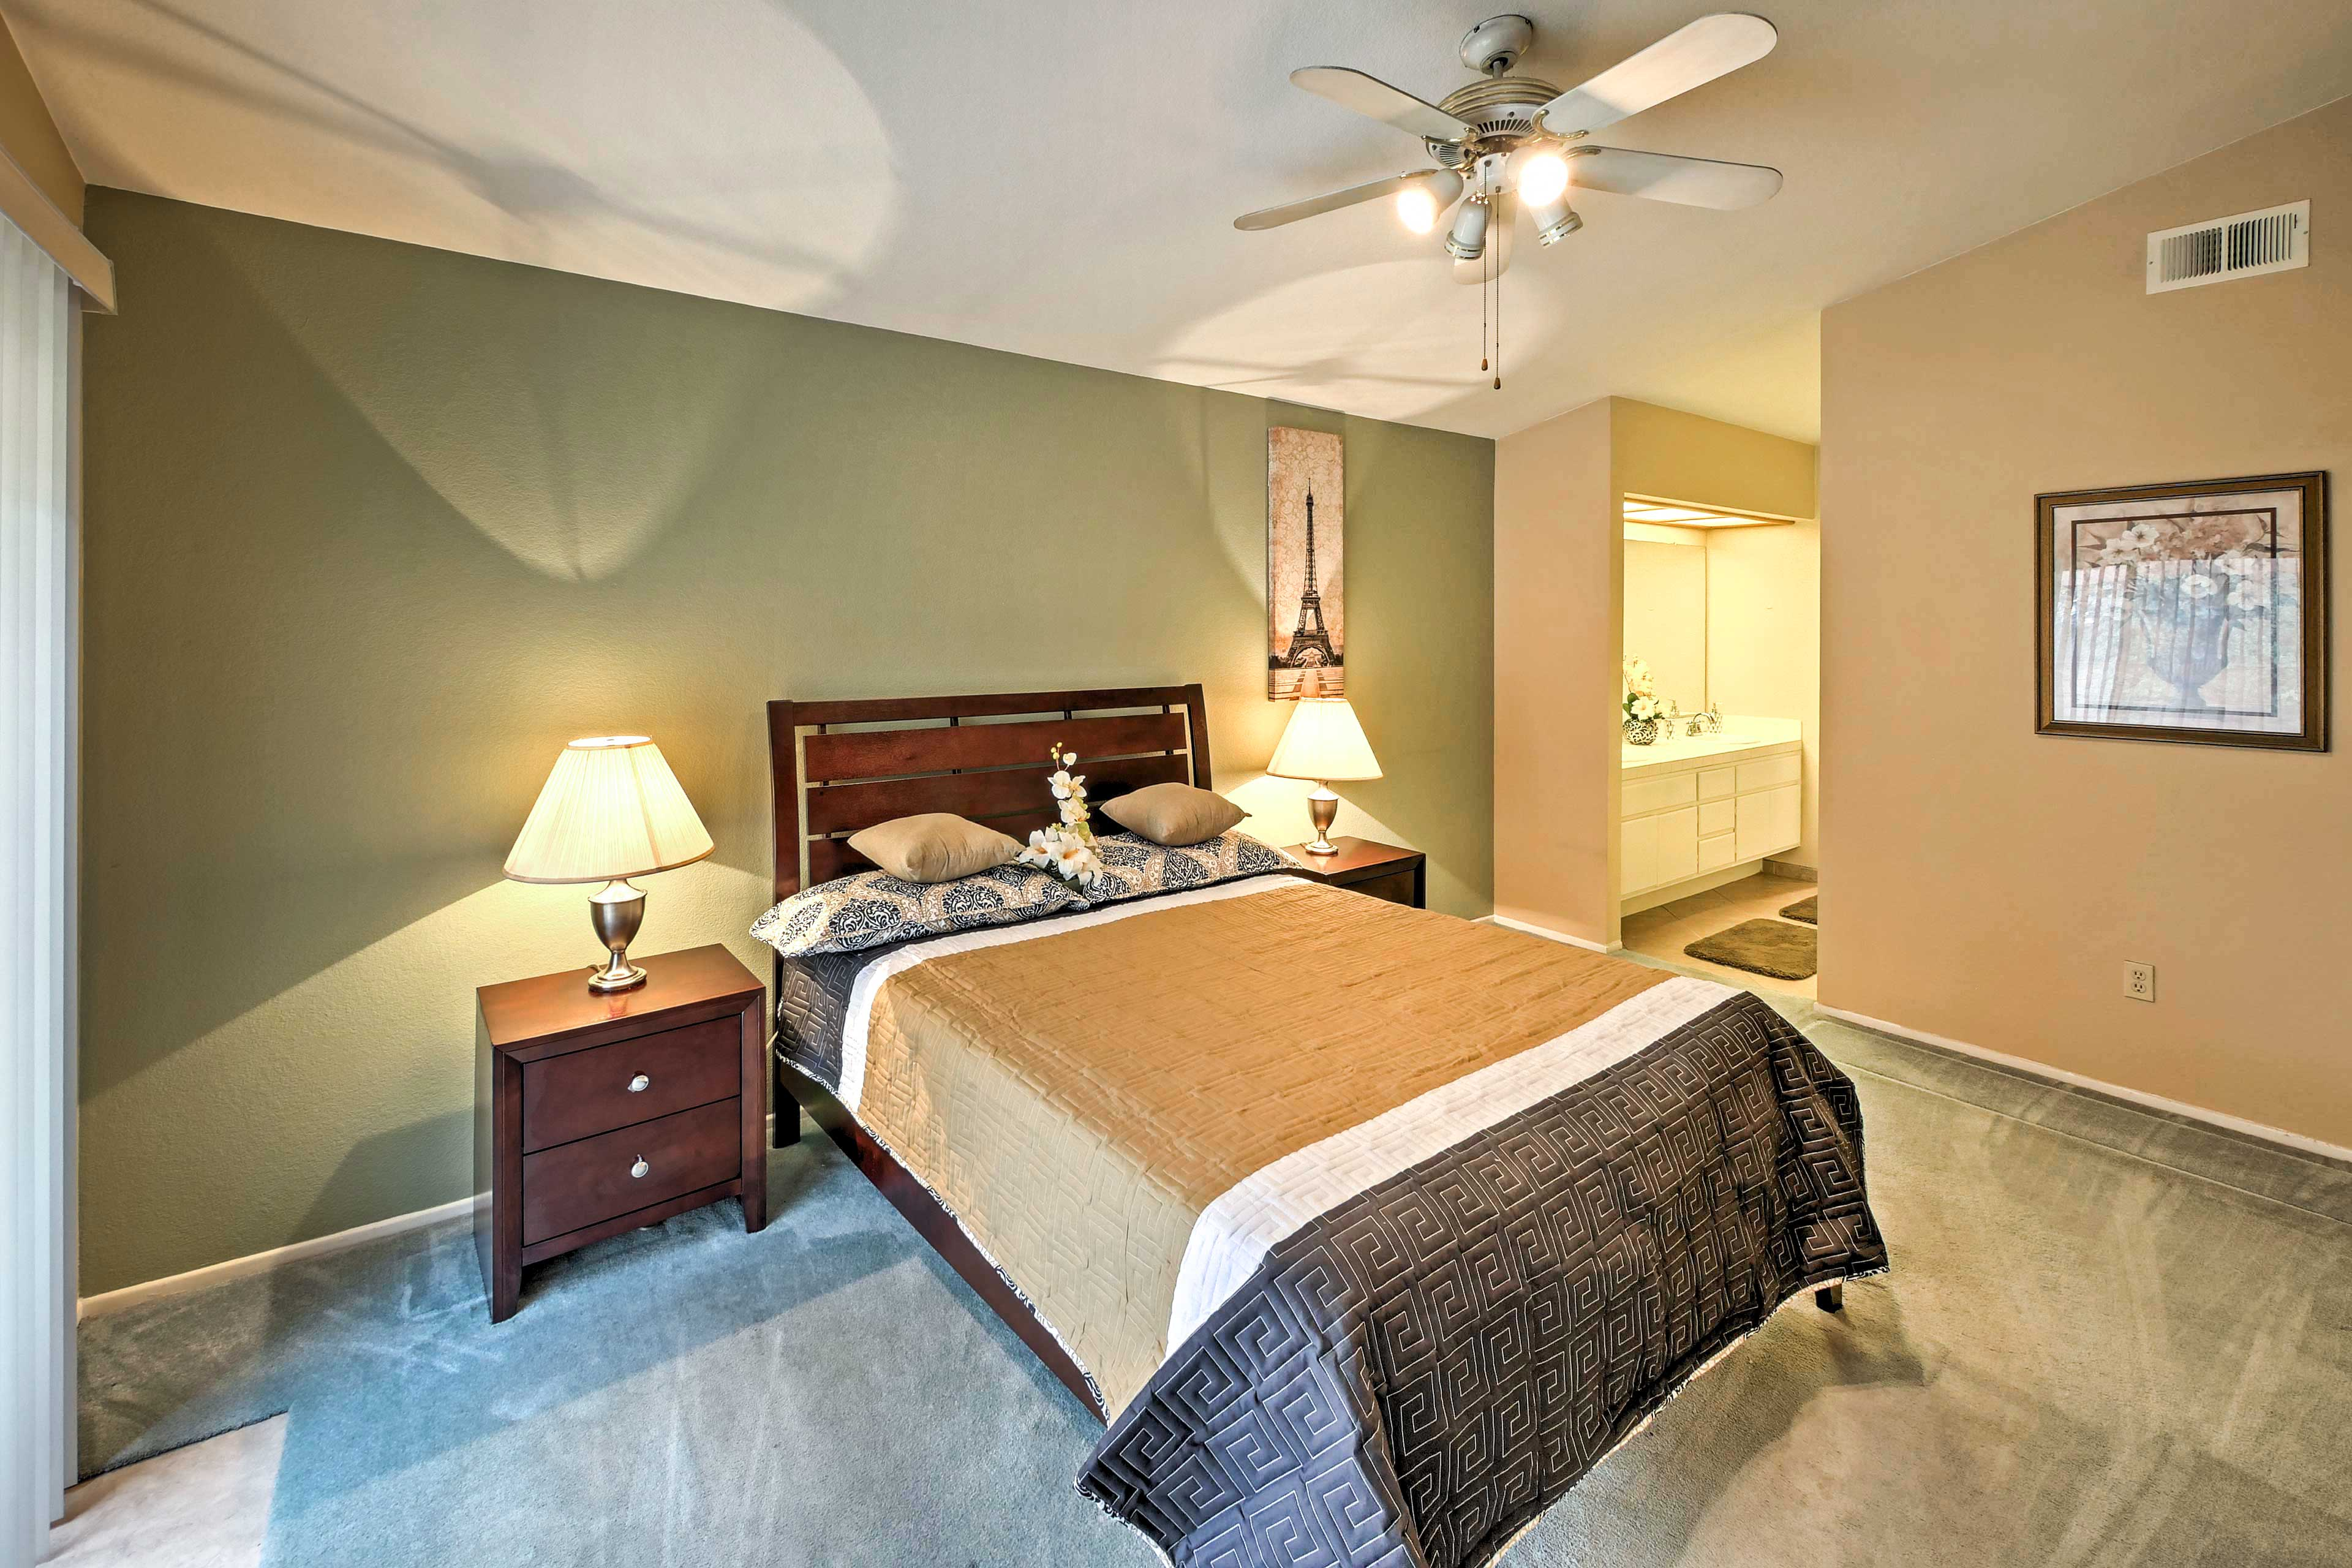 After fun days at Disney or exploring Corona, rest easy in the master bedroom.